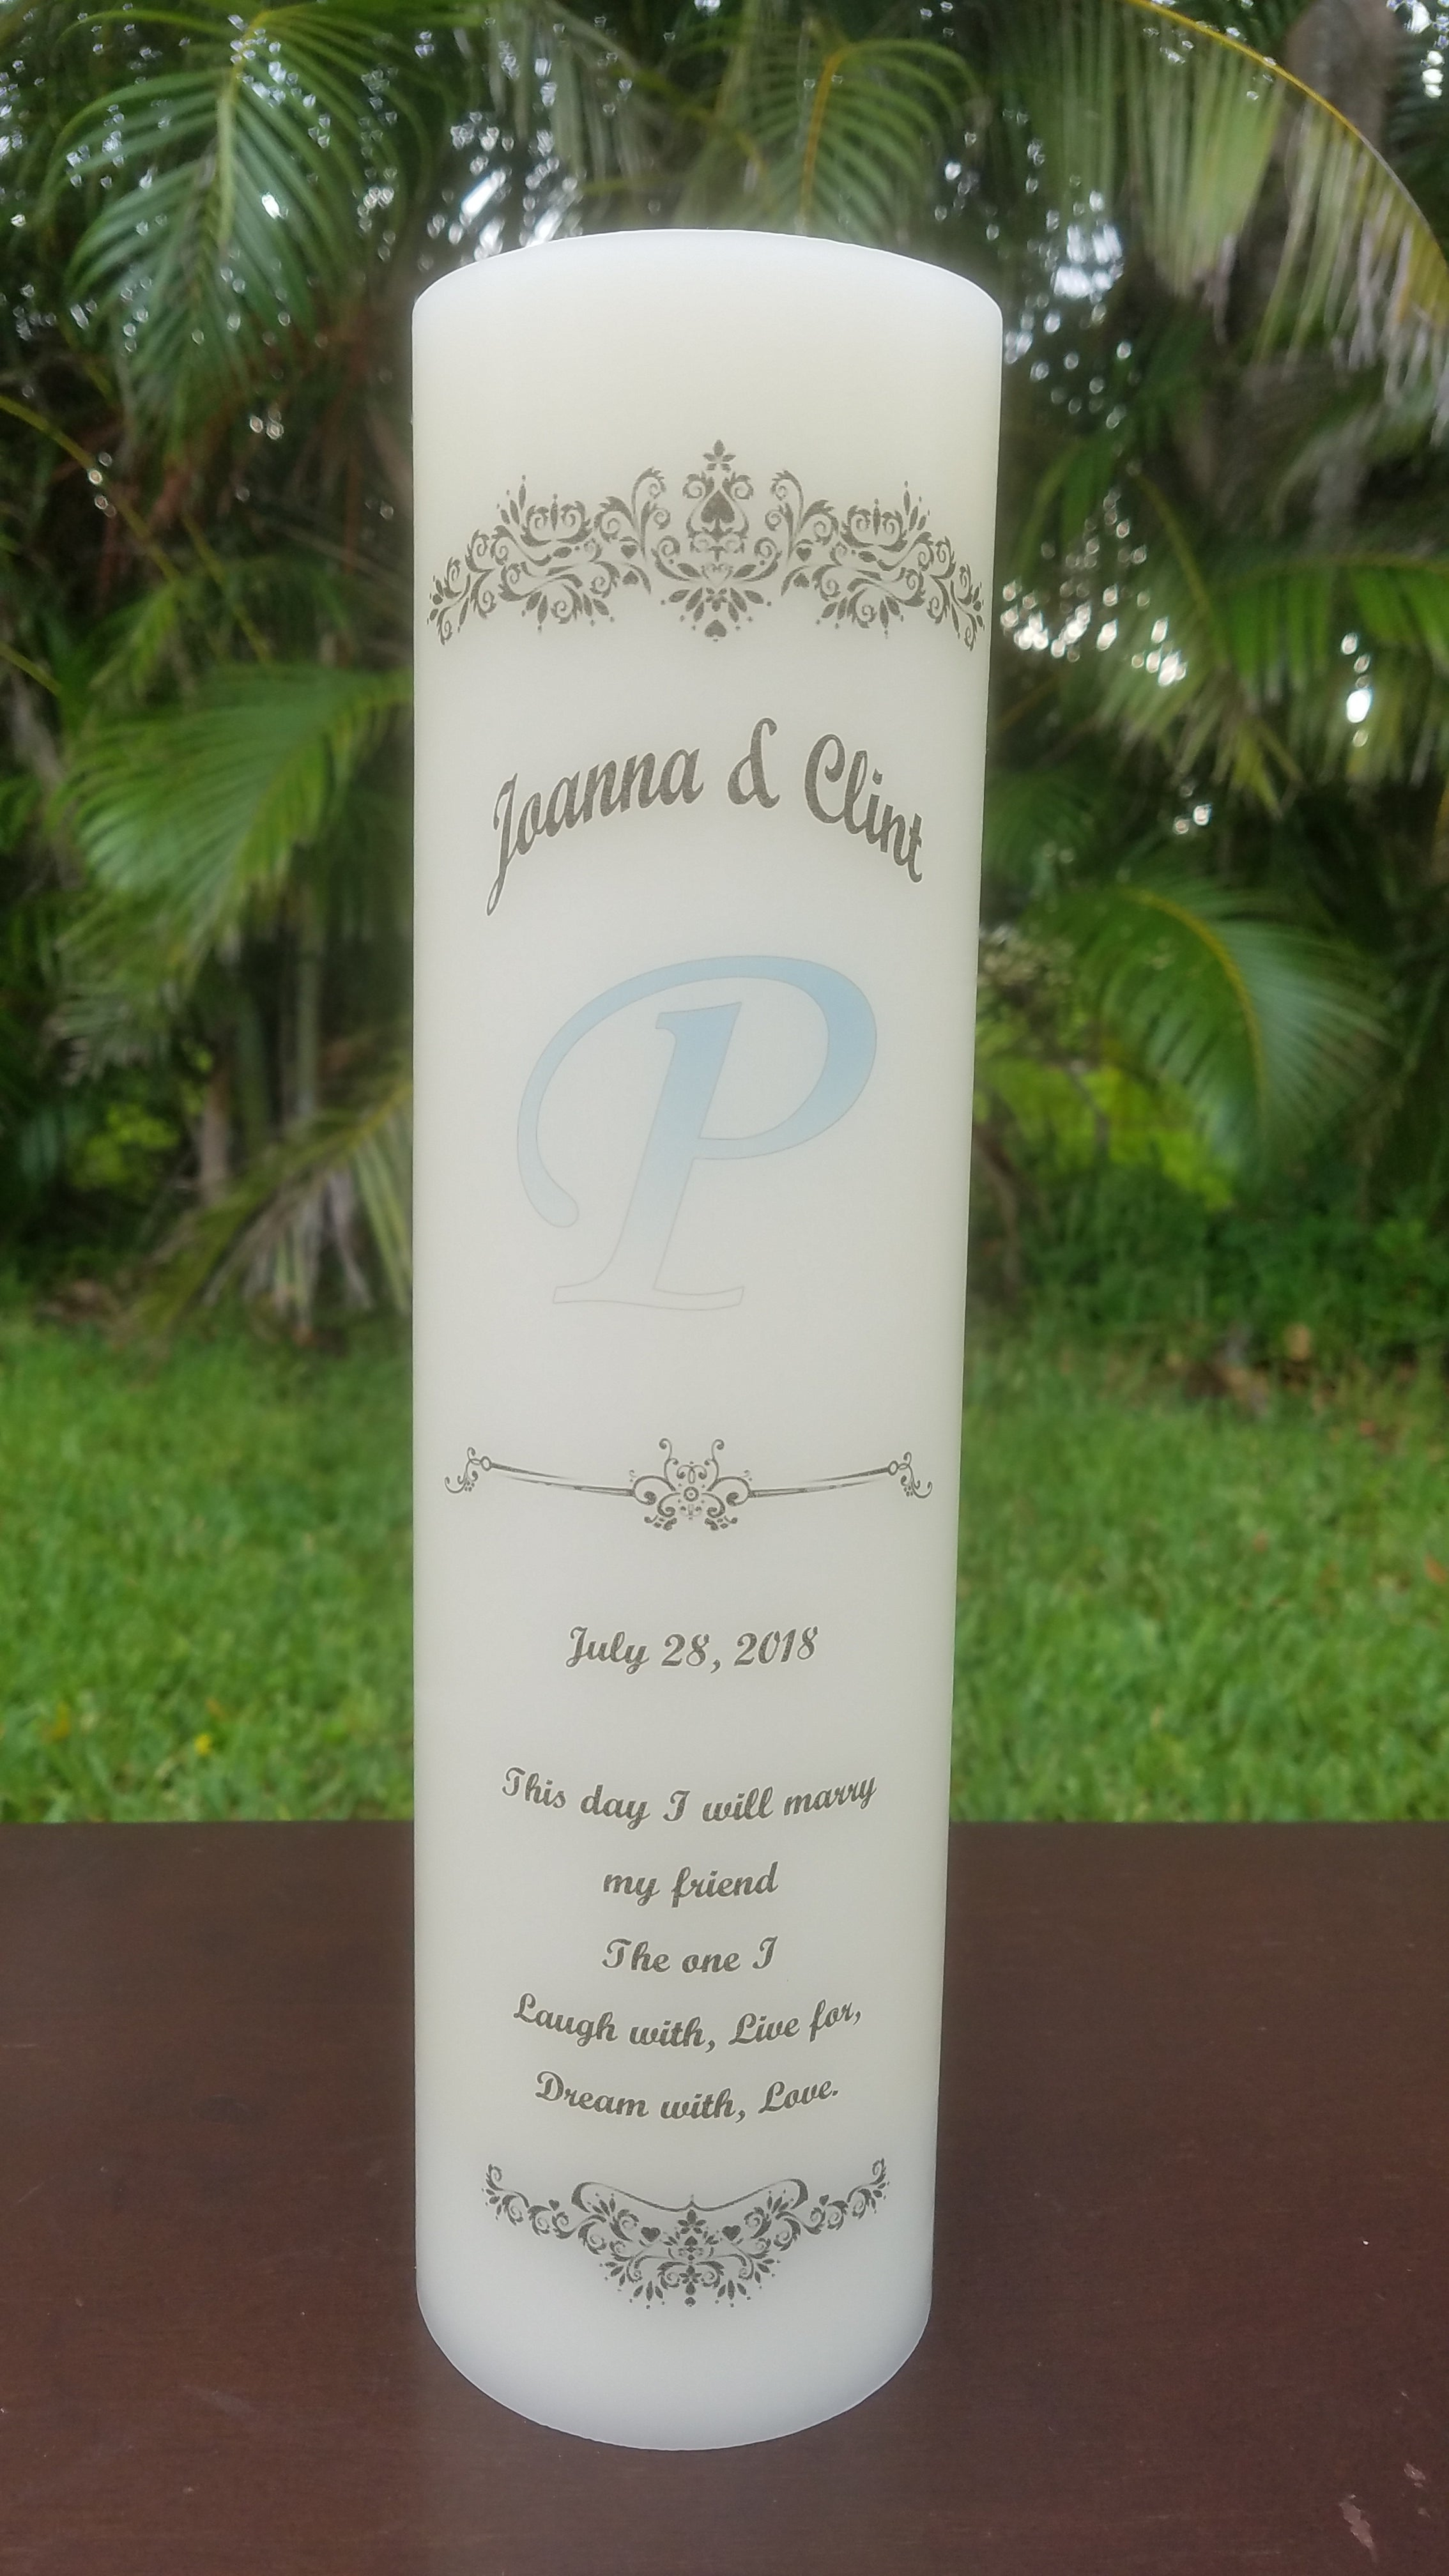 Personalized Unity Candle Personalized Candle Store